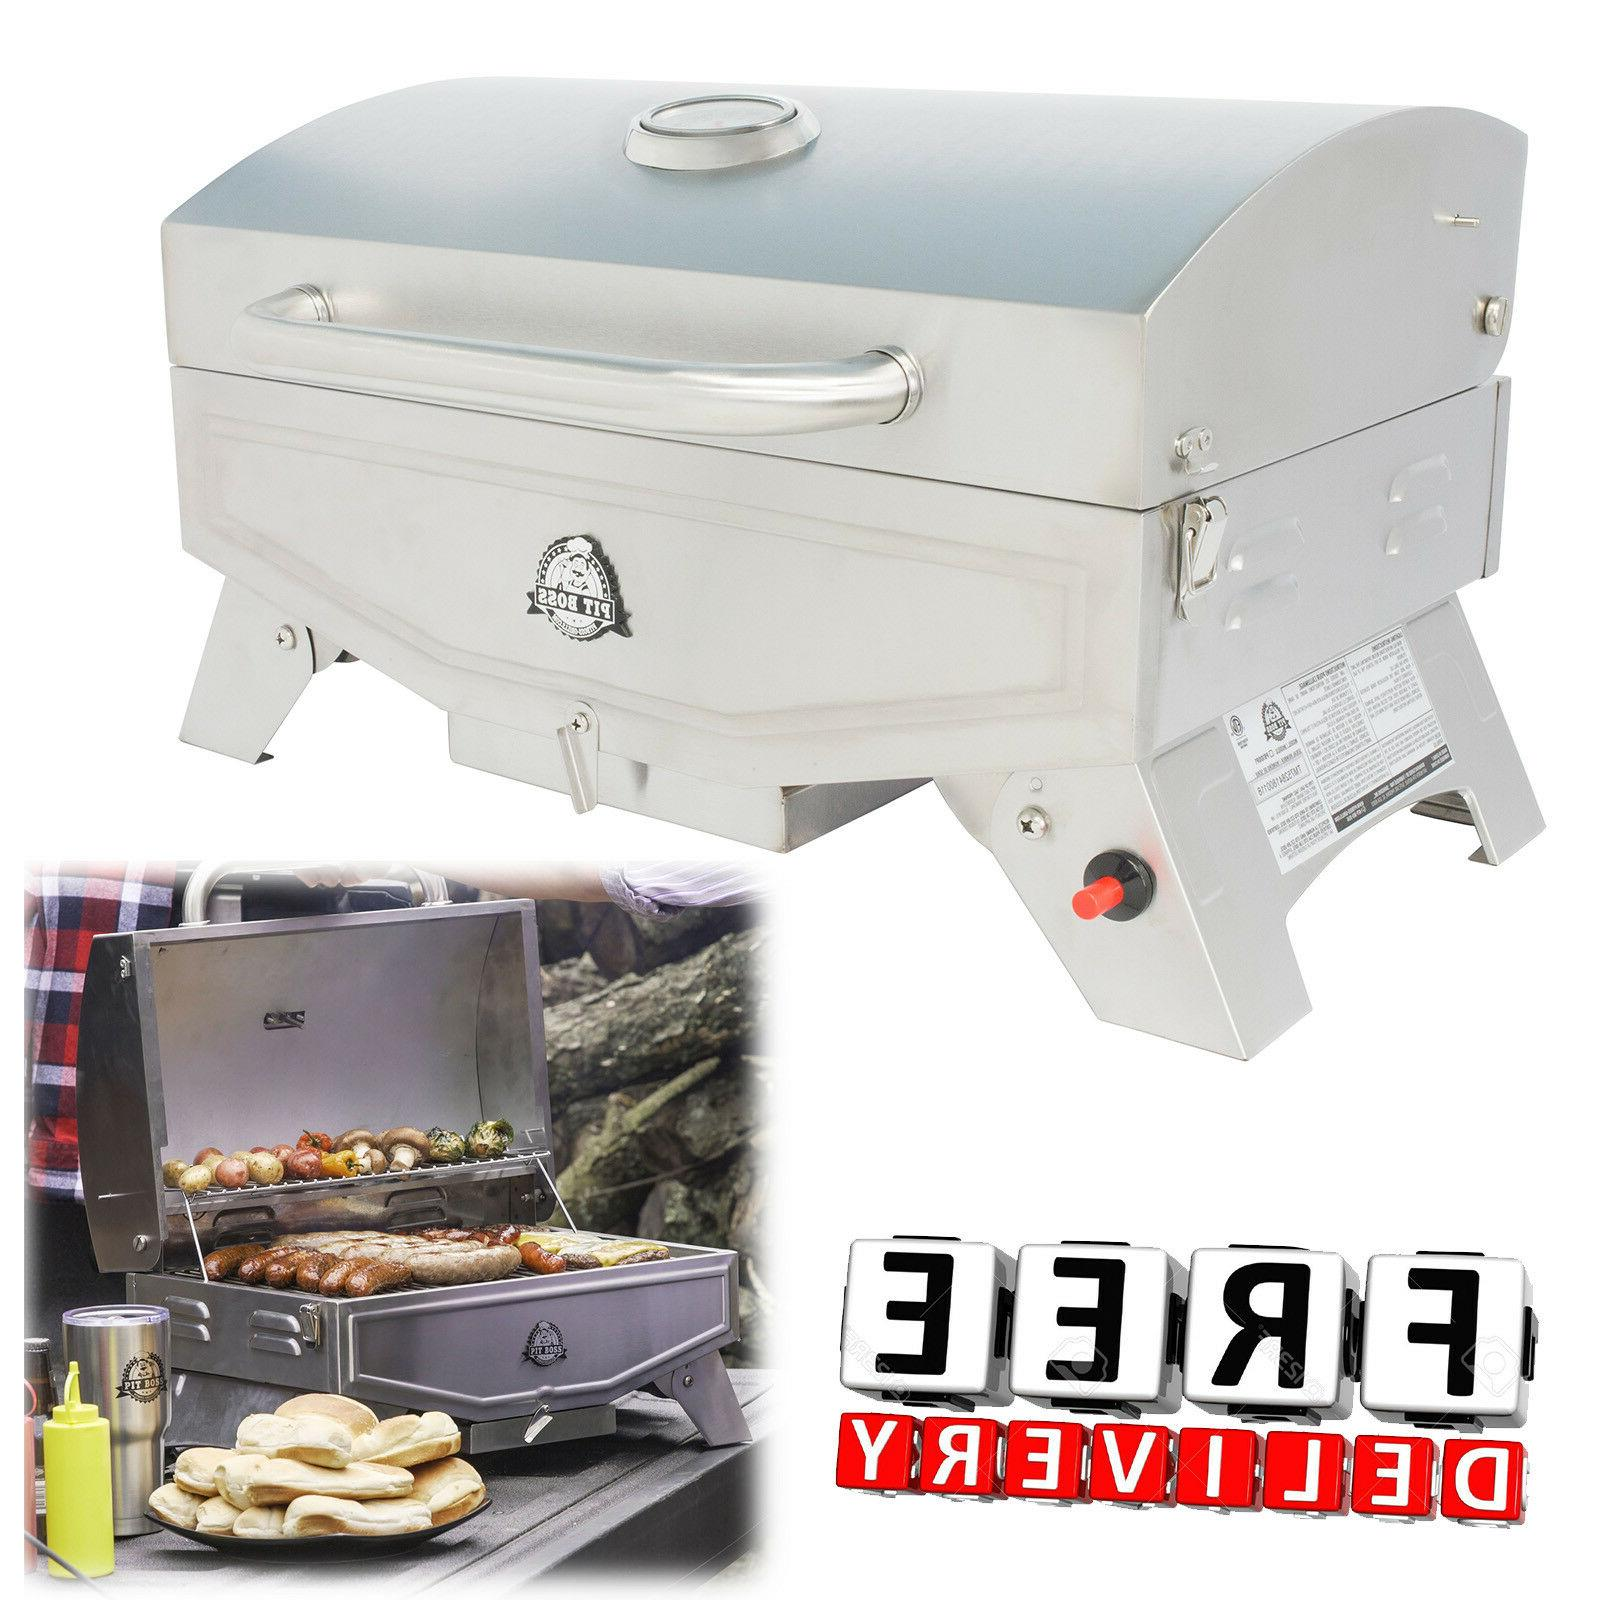 Portable Propane Gas Grill Stainless Steel Barbecue RV Outdo